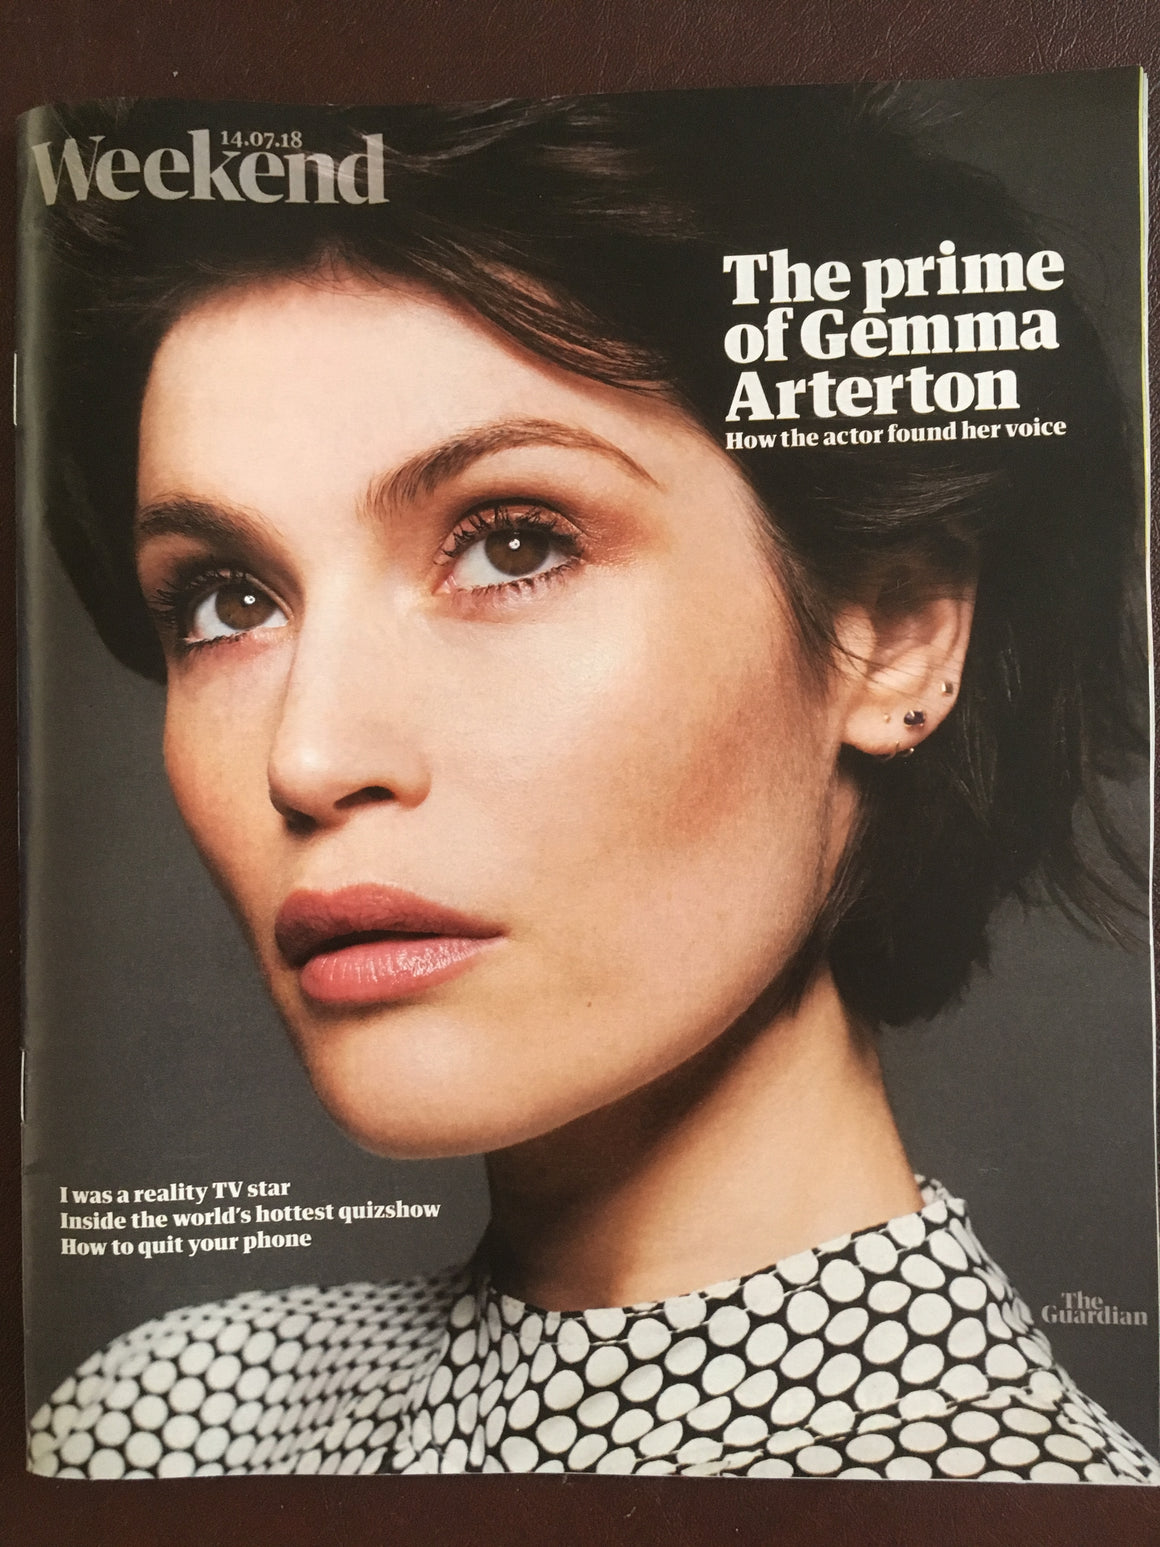 Guardian Weekend magazine 15 July 2018: Gemma Arterton (James Bond) Martin Kemp